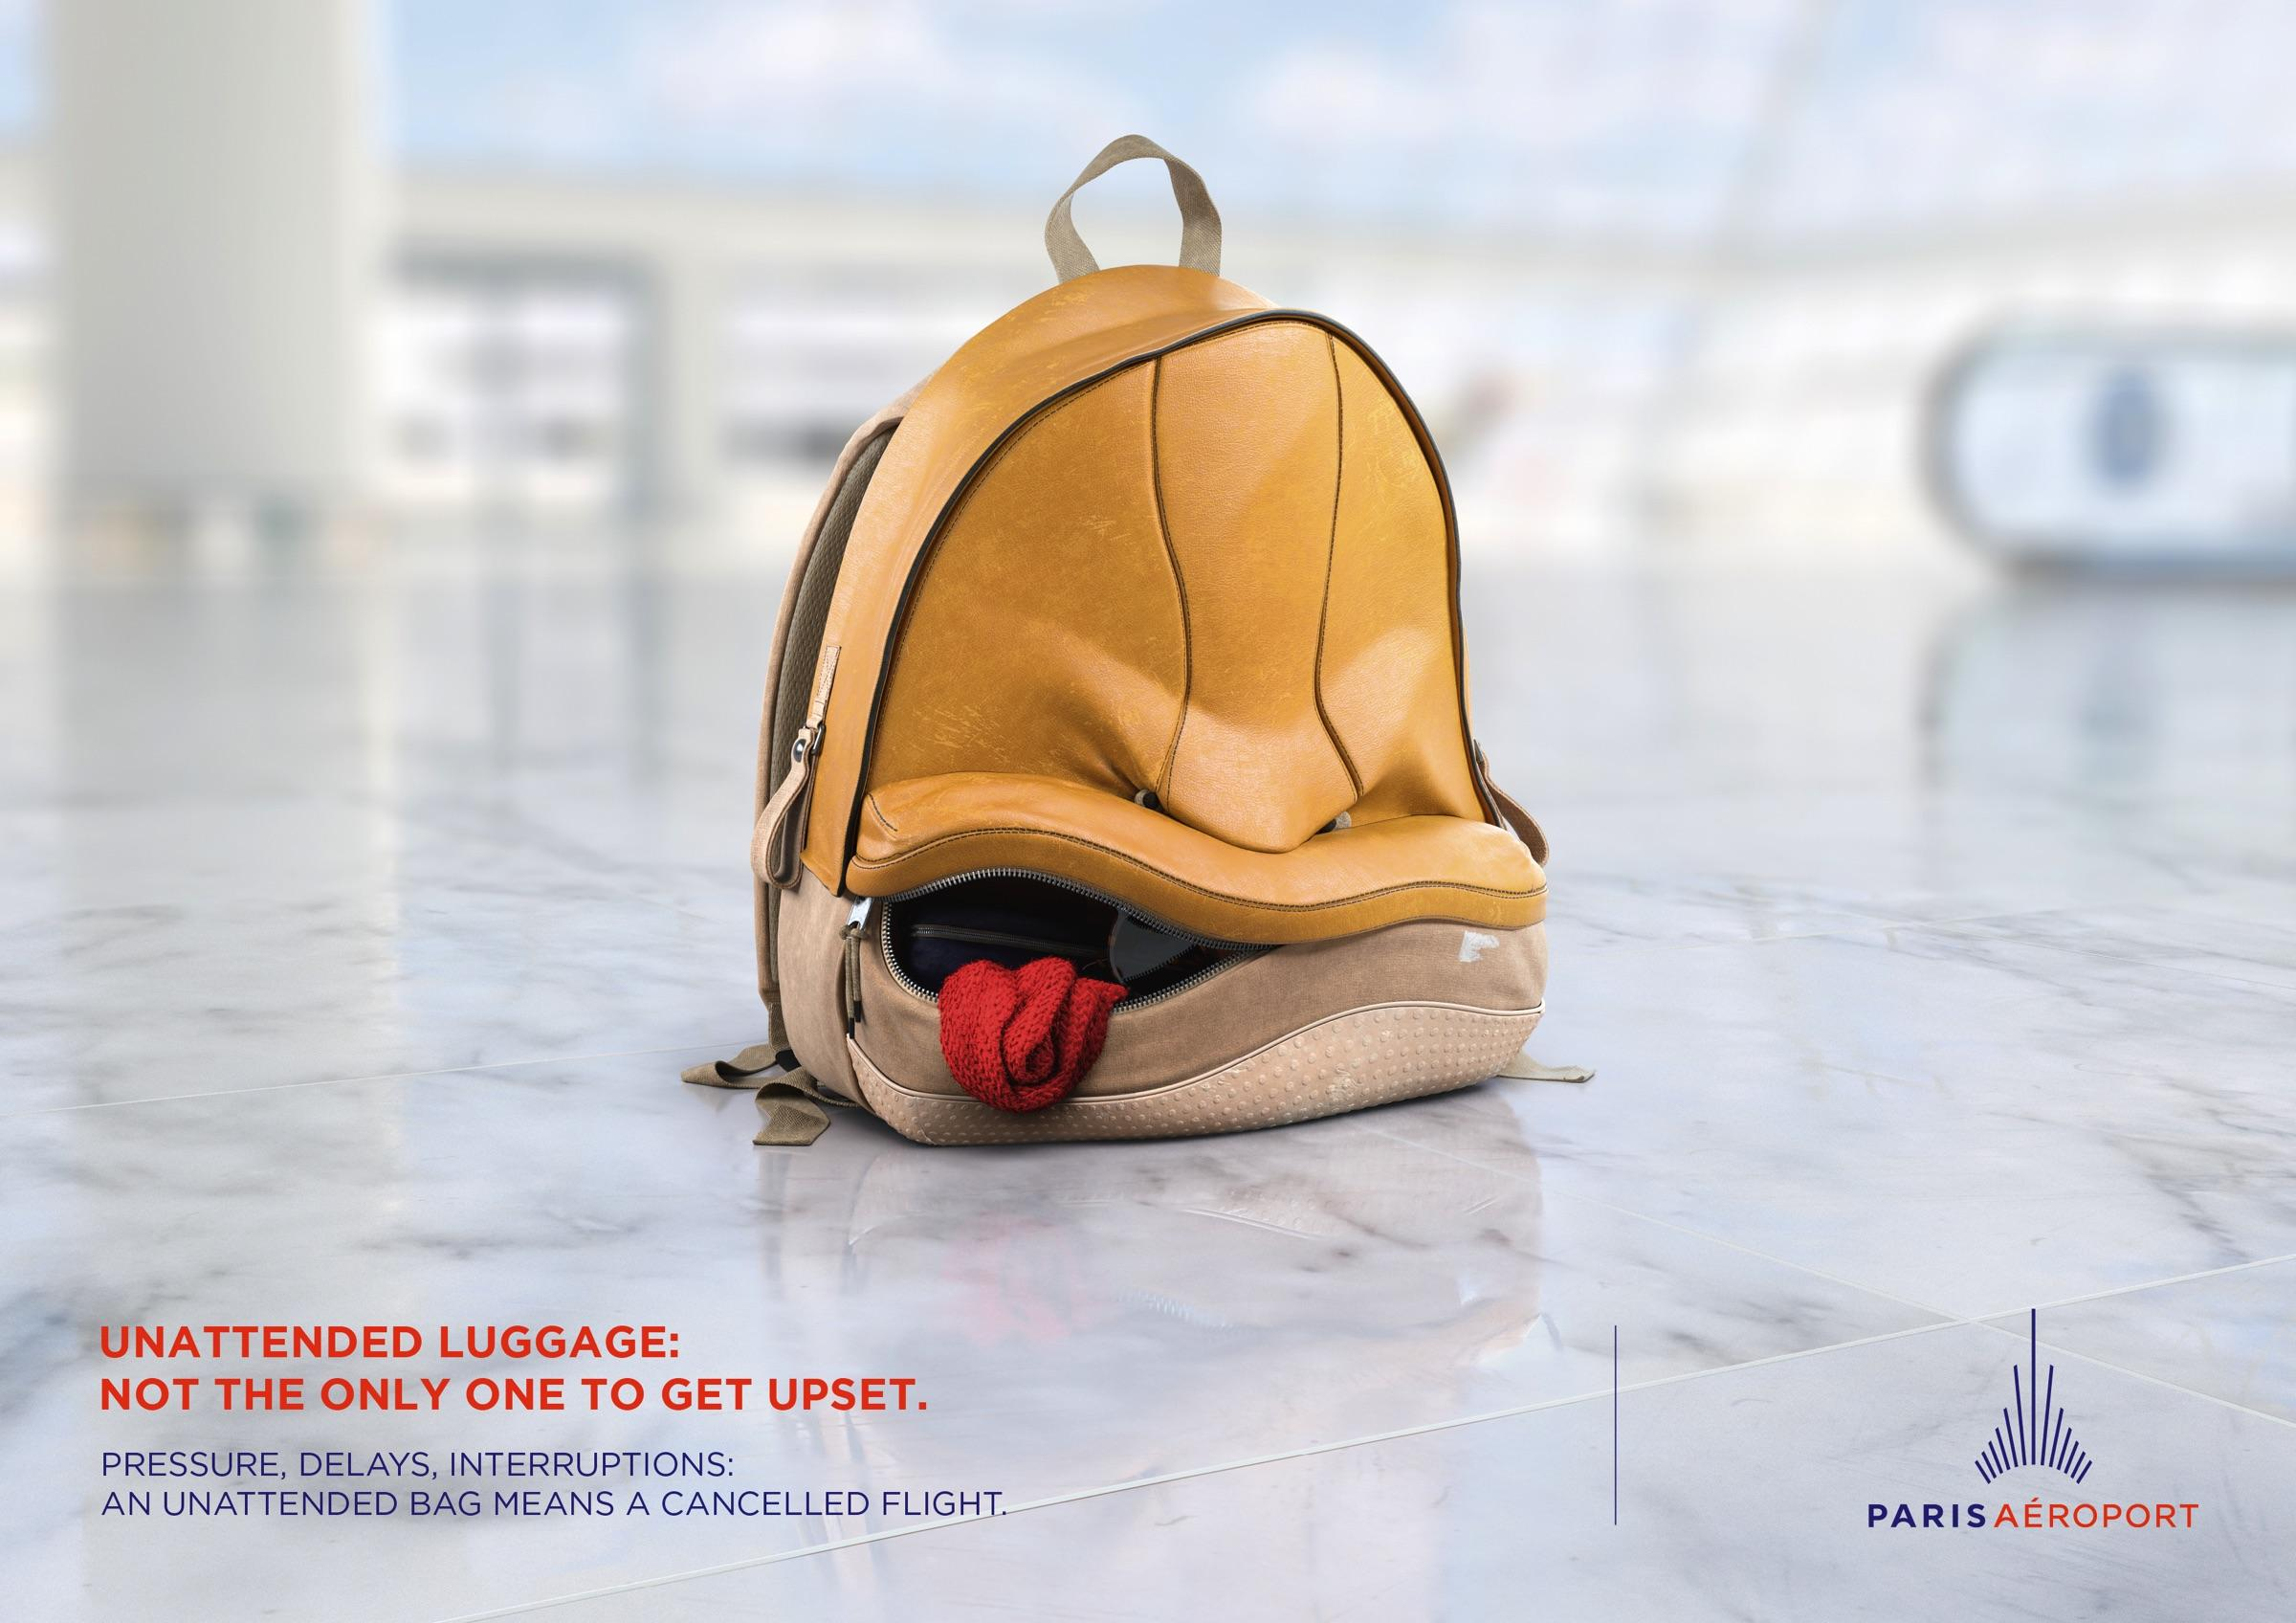 Paris Aéroport Outdoor Ad - Angry Bags, 2